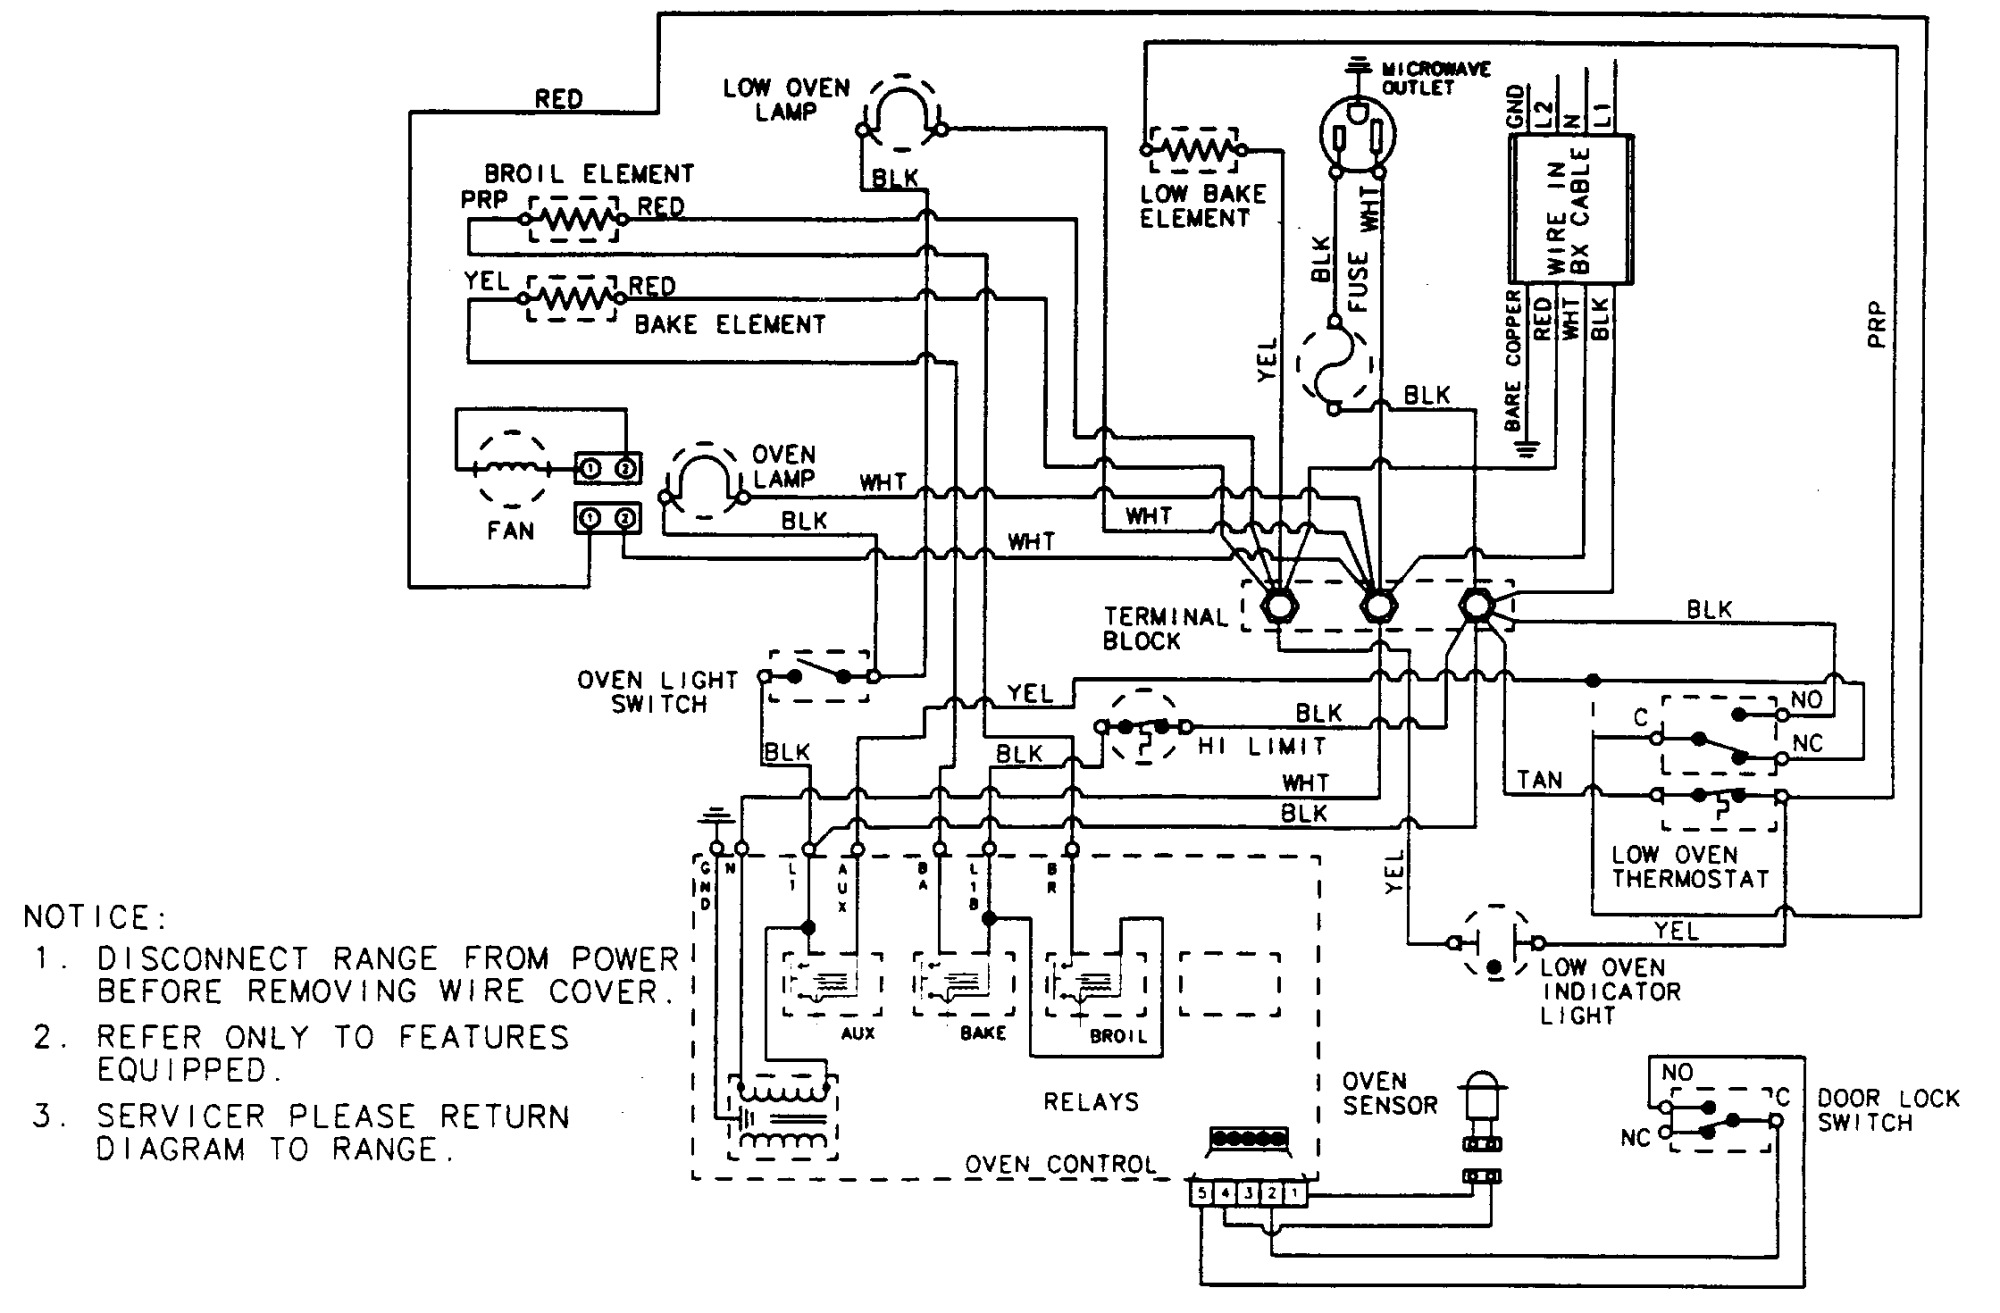 hight resolution of basic electric range wiring diagram wiring diagram source stove wiring diagram stove wiring diagram